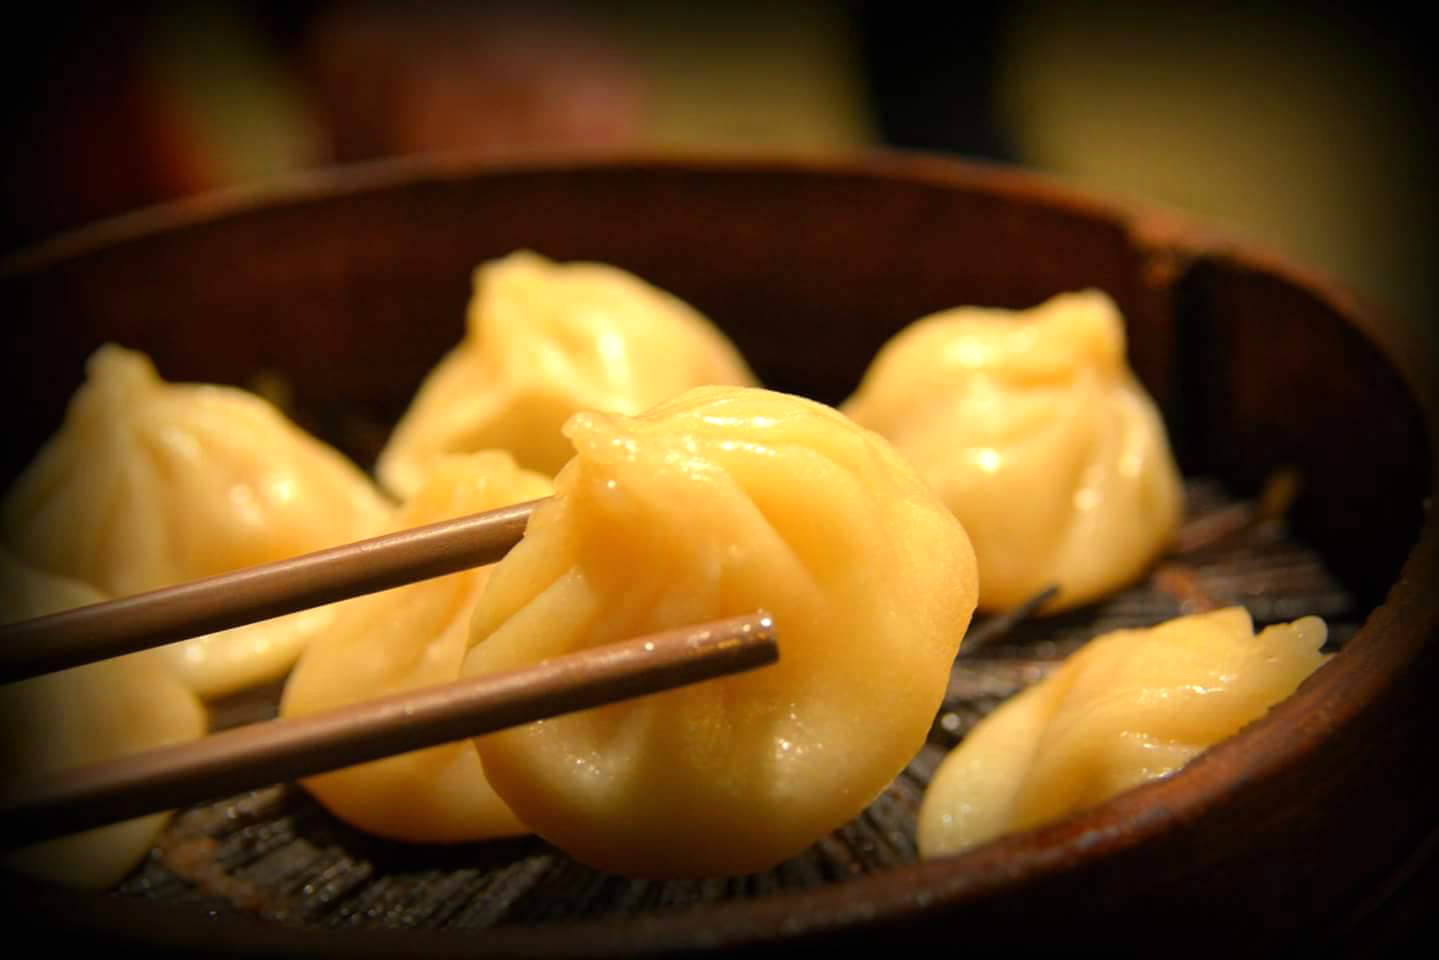 Shanghai dumplings. Photo by Ng Siew Cheng